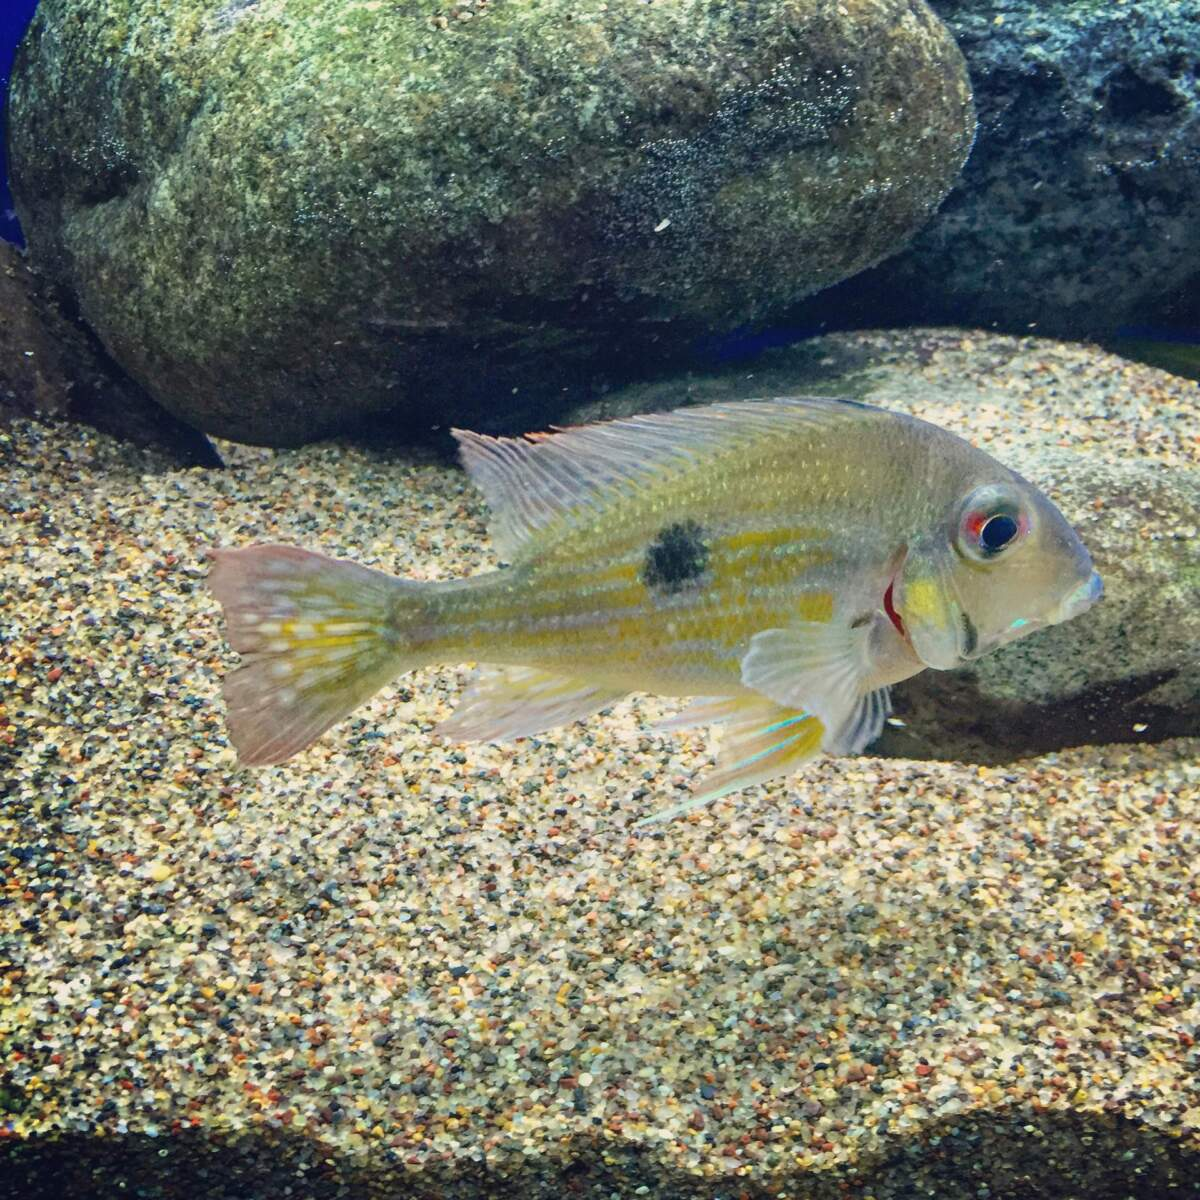 image of a stripetail fish inside of an aquarium